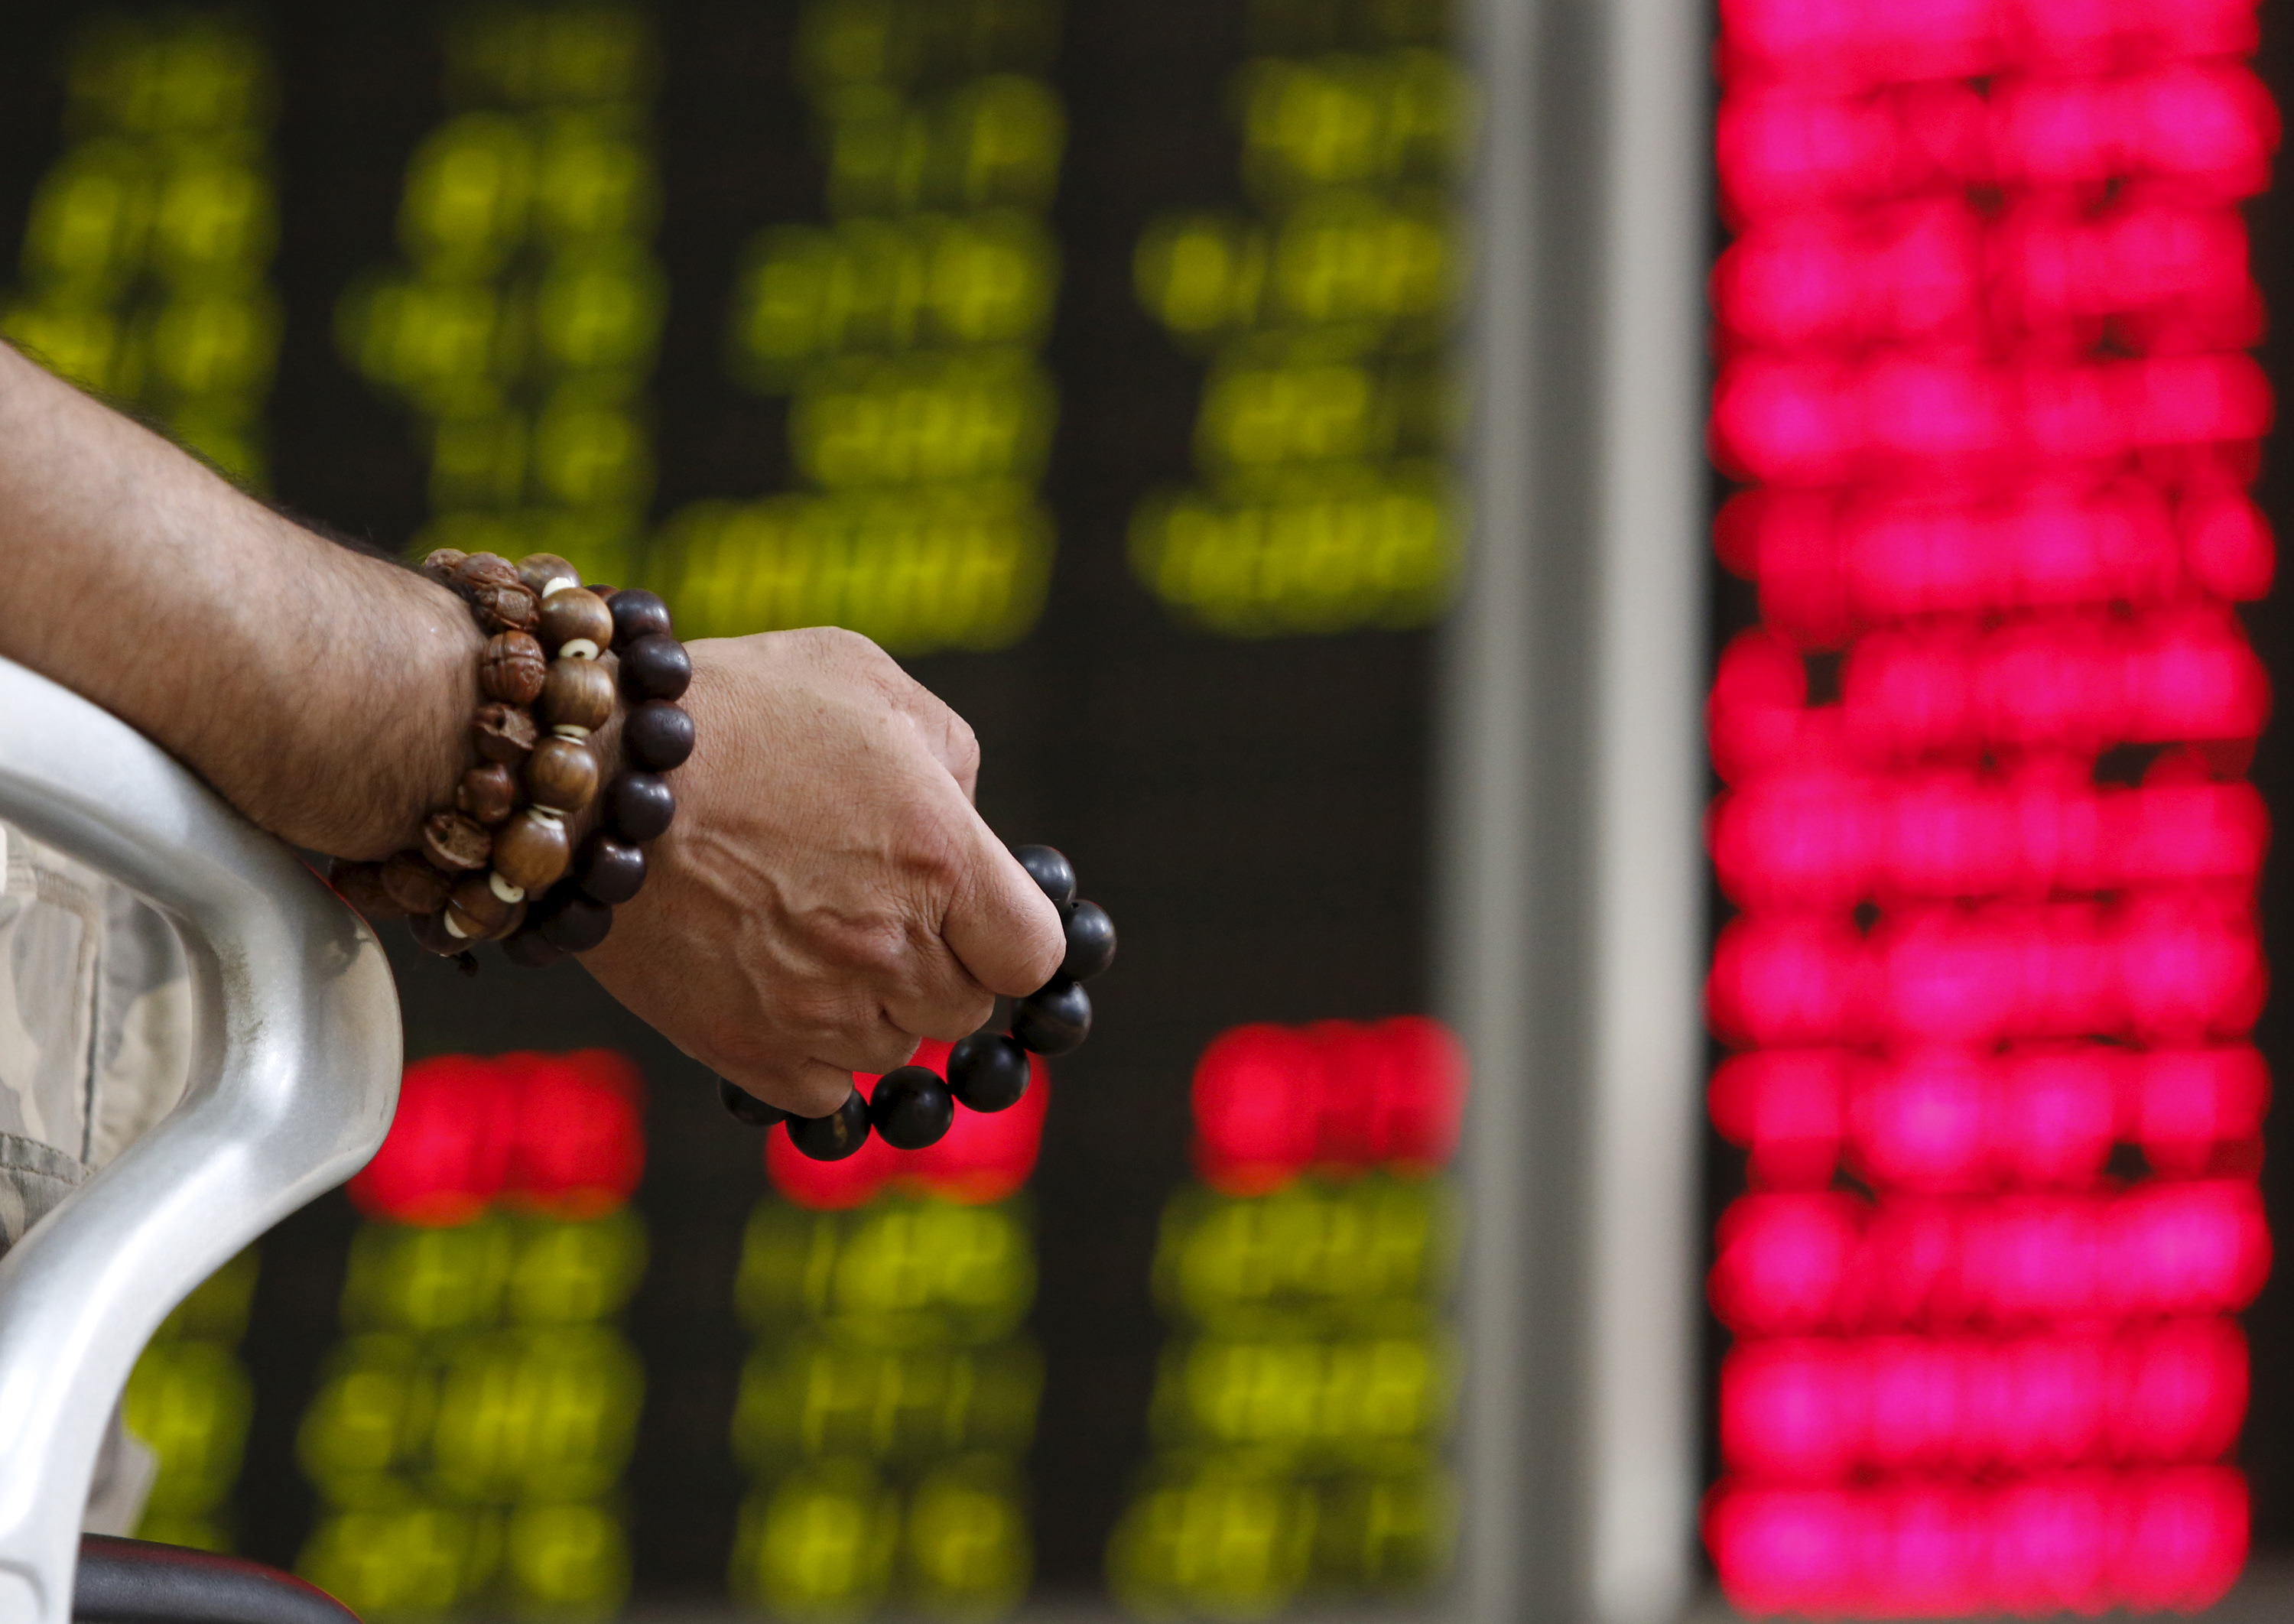 An investor holds onto prayer beads as he watches a board showing stock prices at a brokerage office in Beijing, China, July 6, 2015